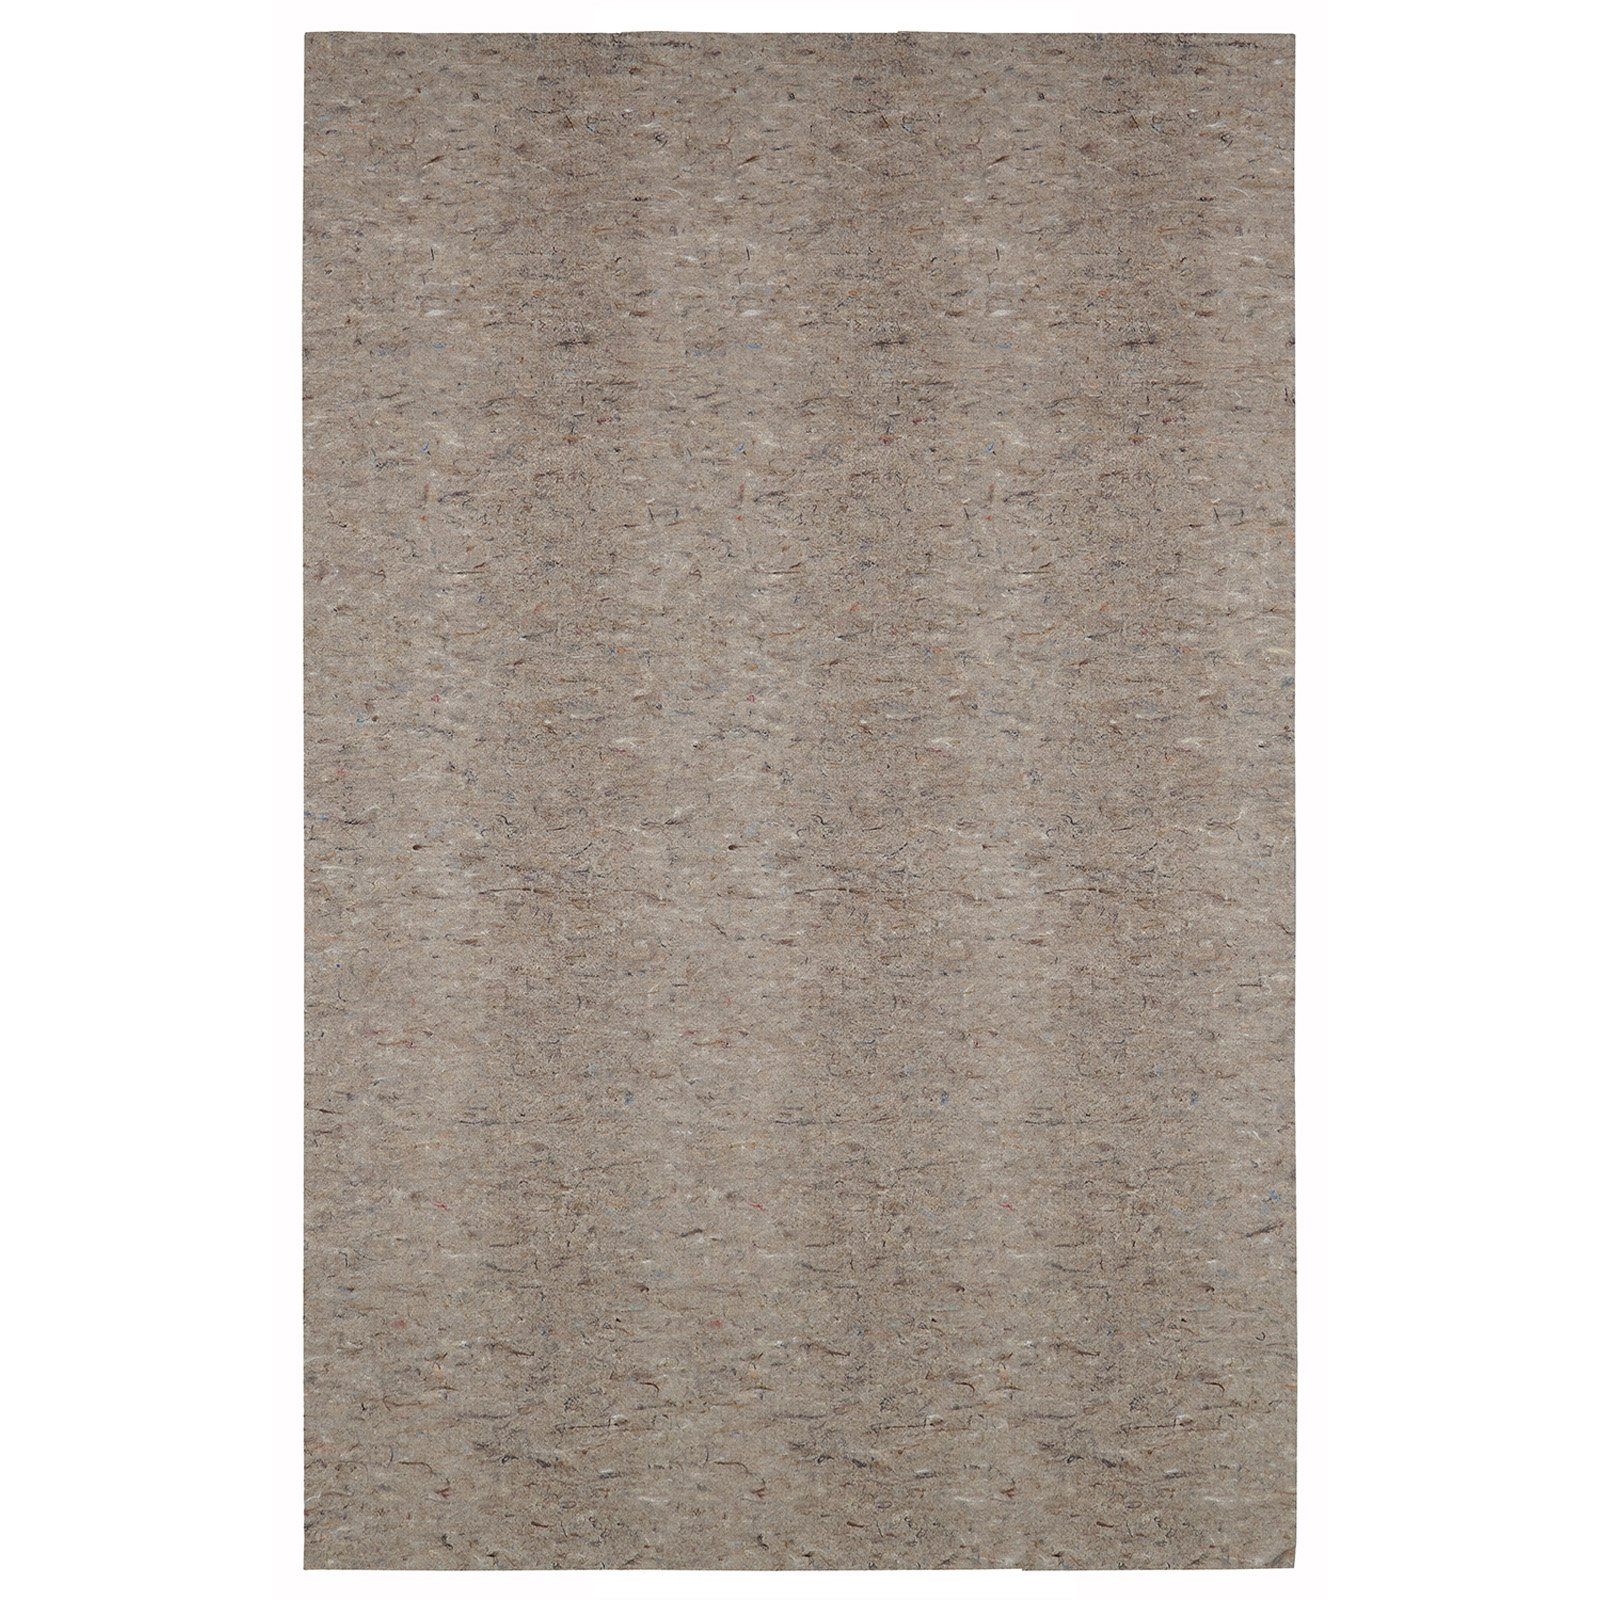 Karastan Down Under Cream Pad Area Rug by Mohwak Home